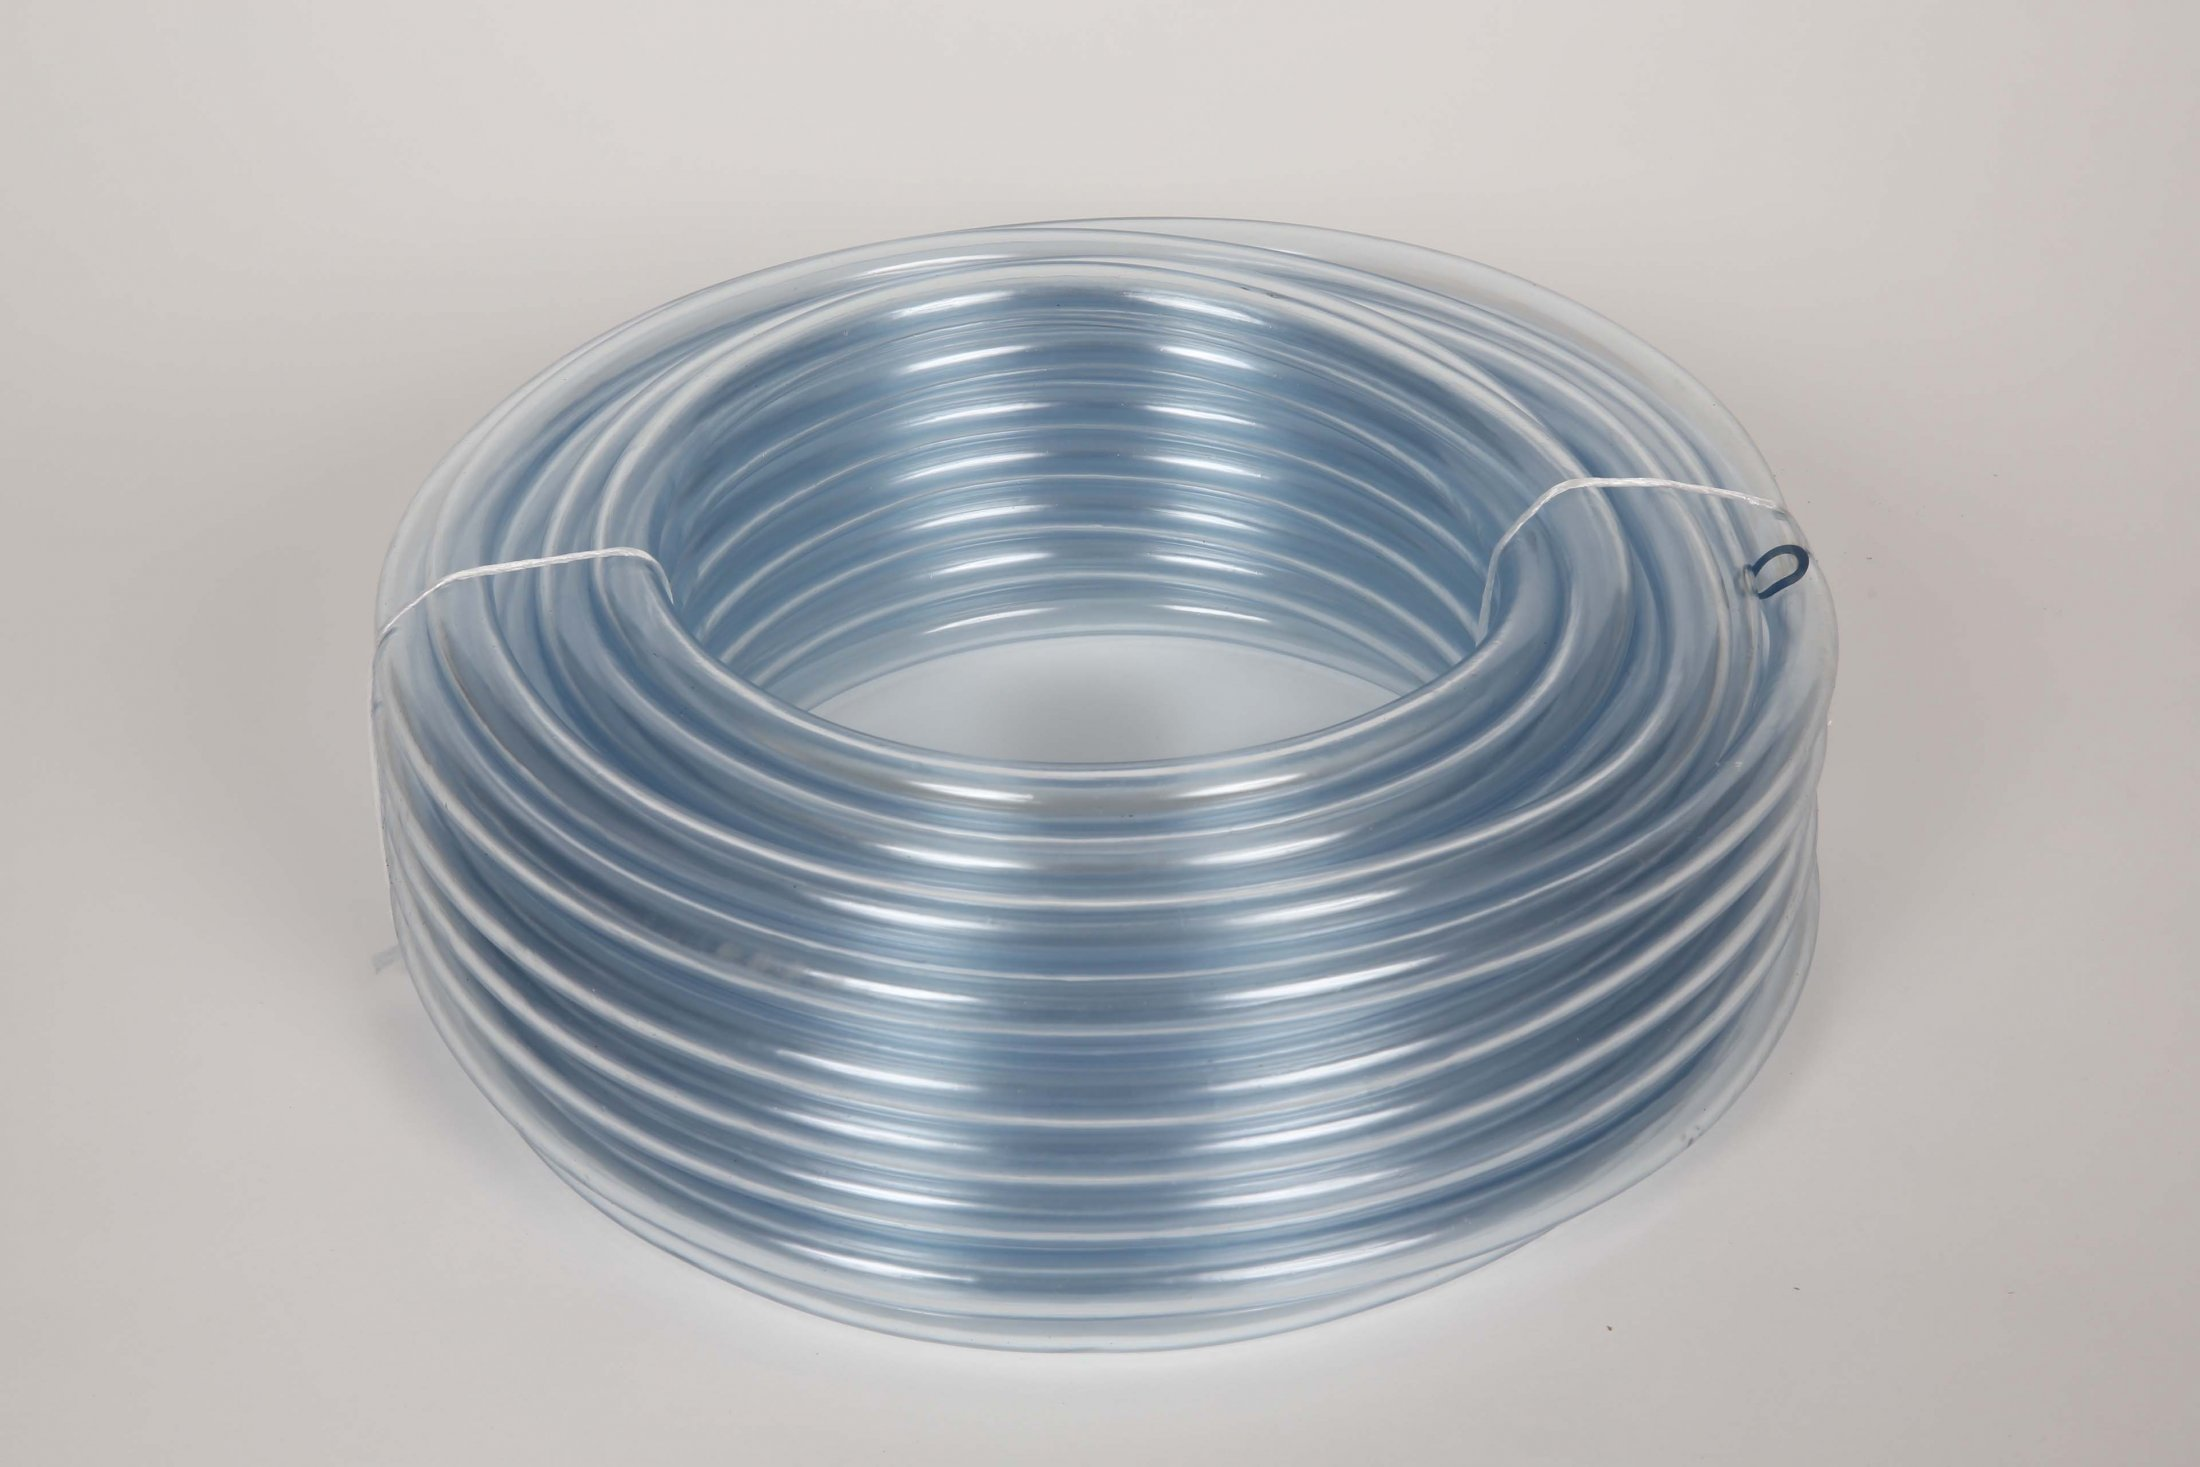 Clear PVC Tubing - Food Grade - Ontario Hose Specialties Limited.